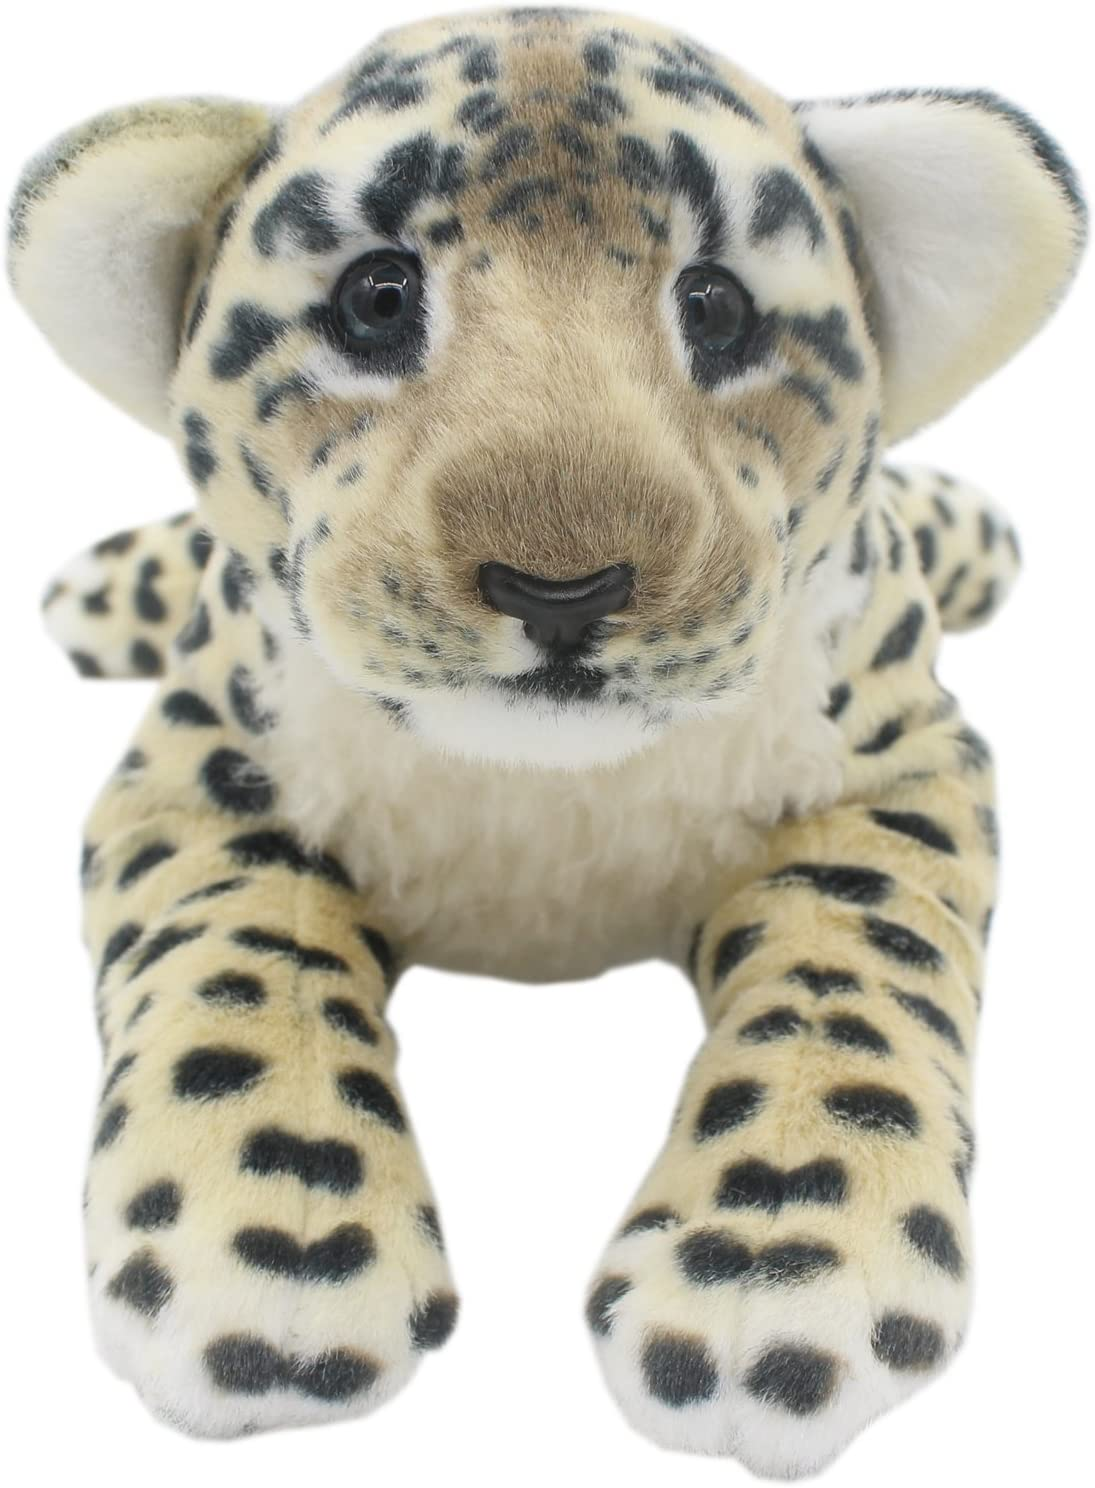 TAGLN The Jungle Animals Stuffed Plush Toys Tiger Leopard Panther Lioness Pillows (Brown Leopard, 19 Inch)